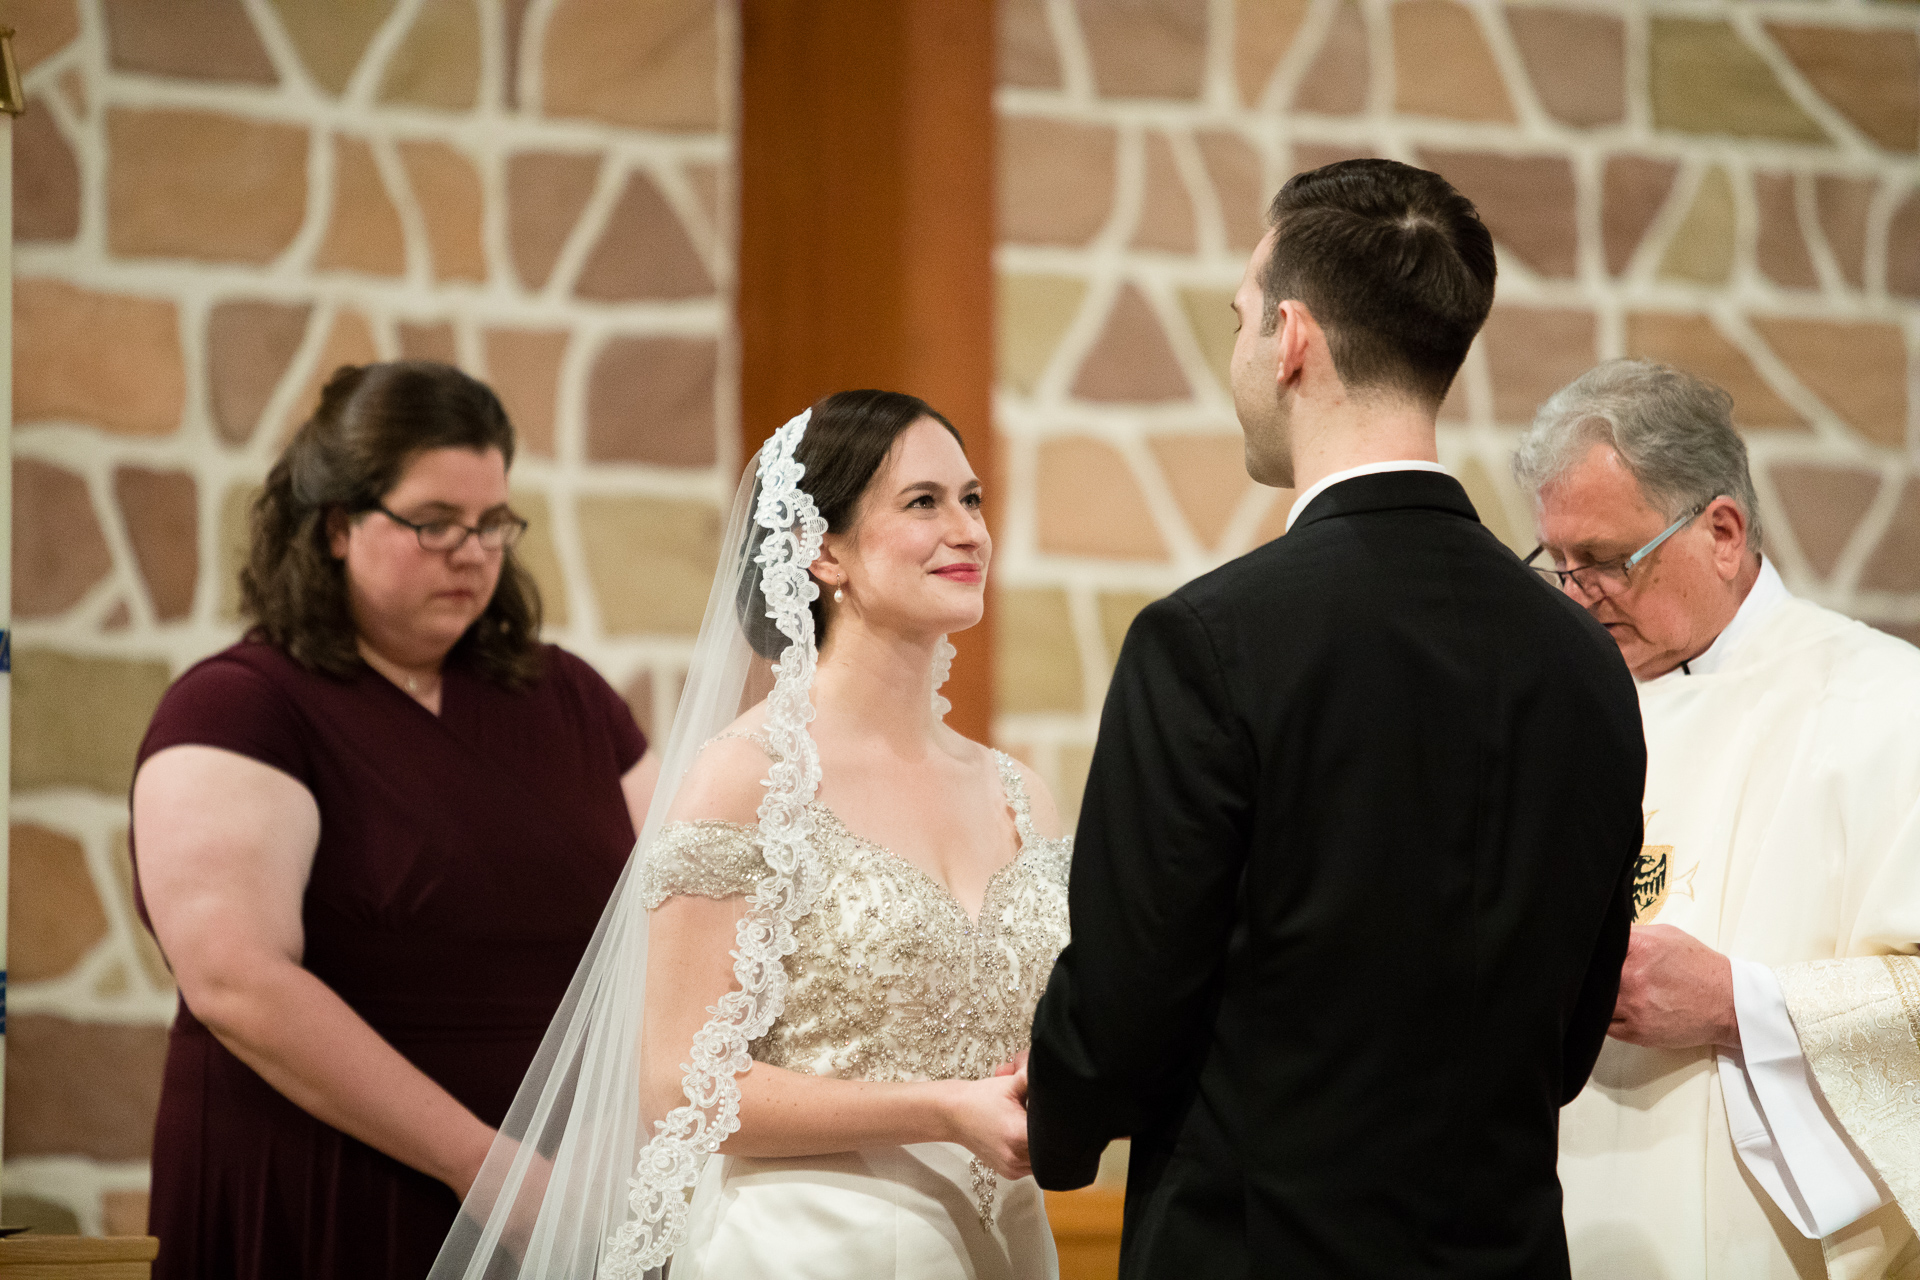 Bride with mantilla saying vows at wedding ceremony